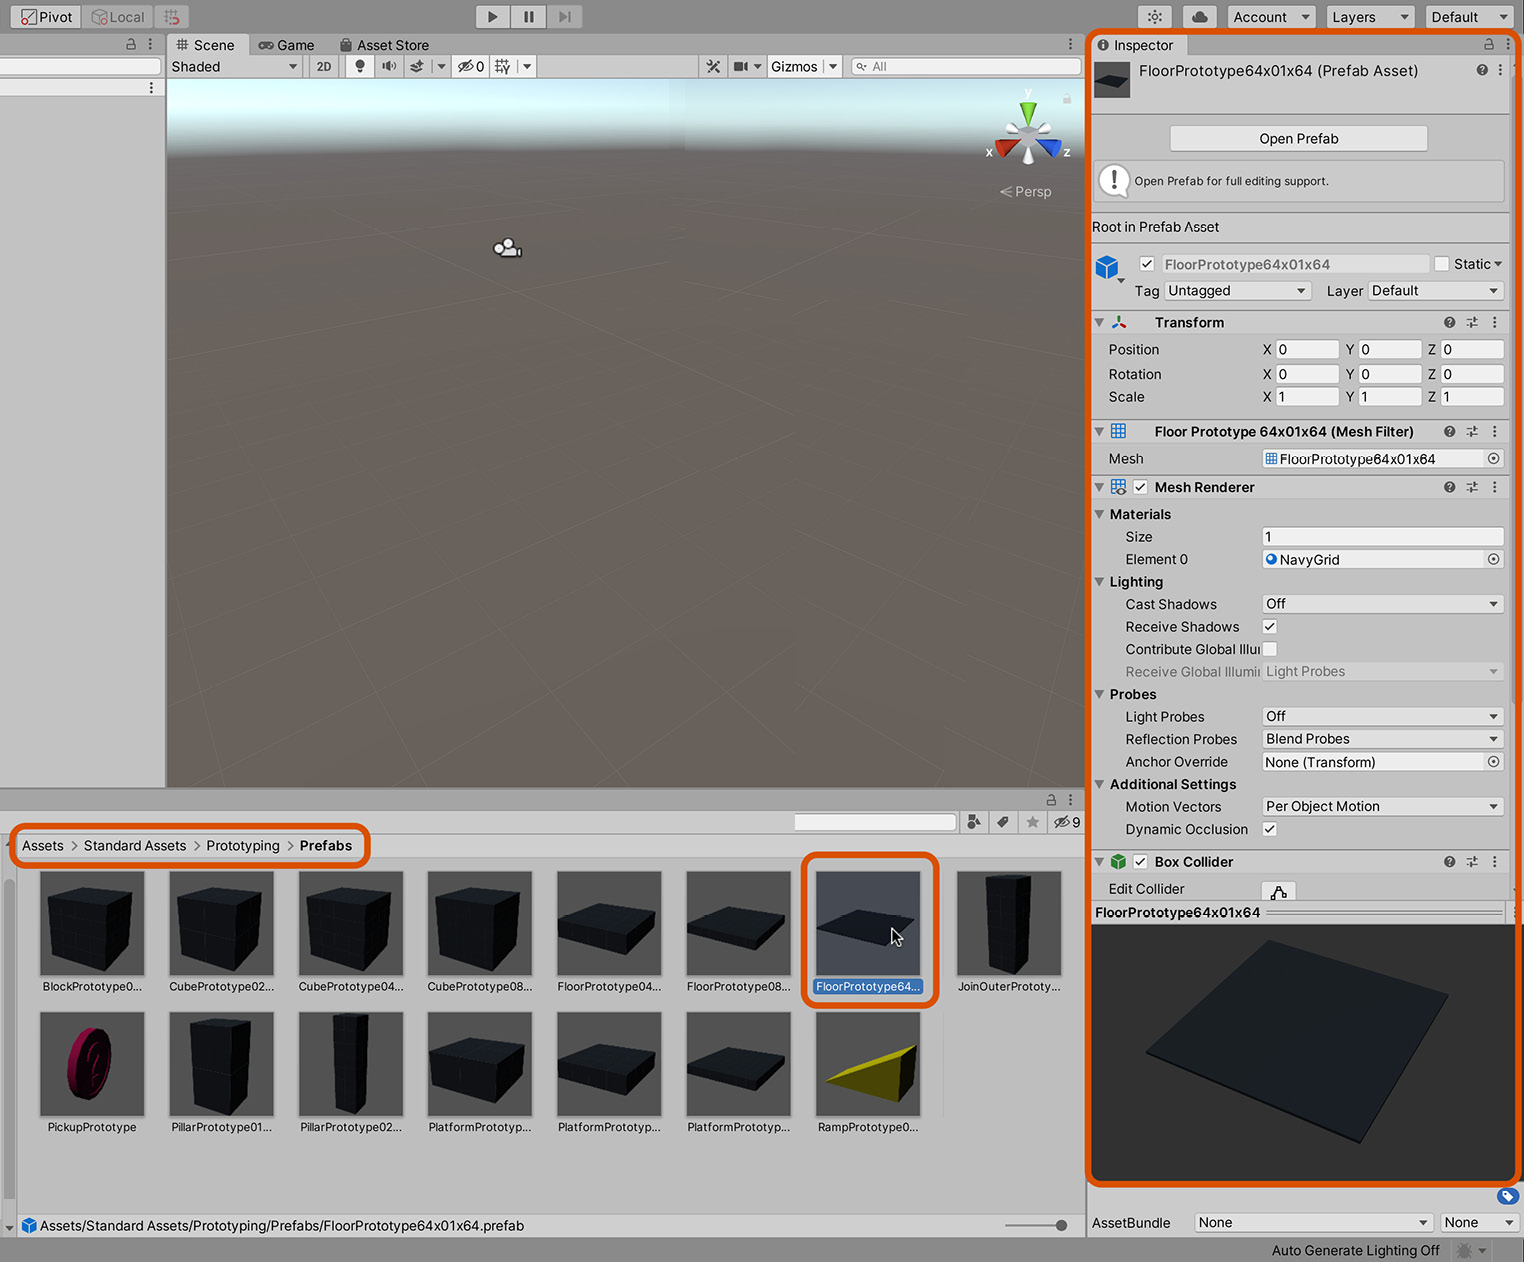 Figure 1.16 – The Standard Assets/Prototyping folder contains many meshes for quick scene building